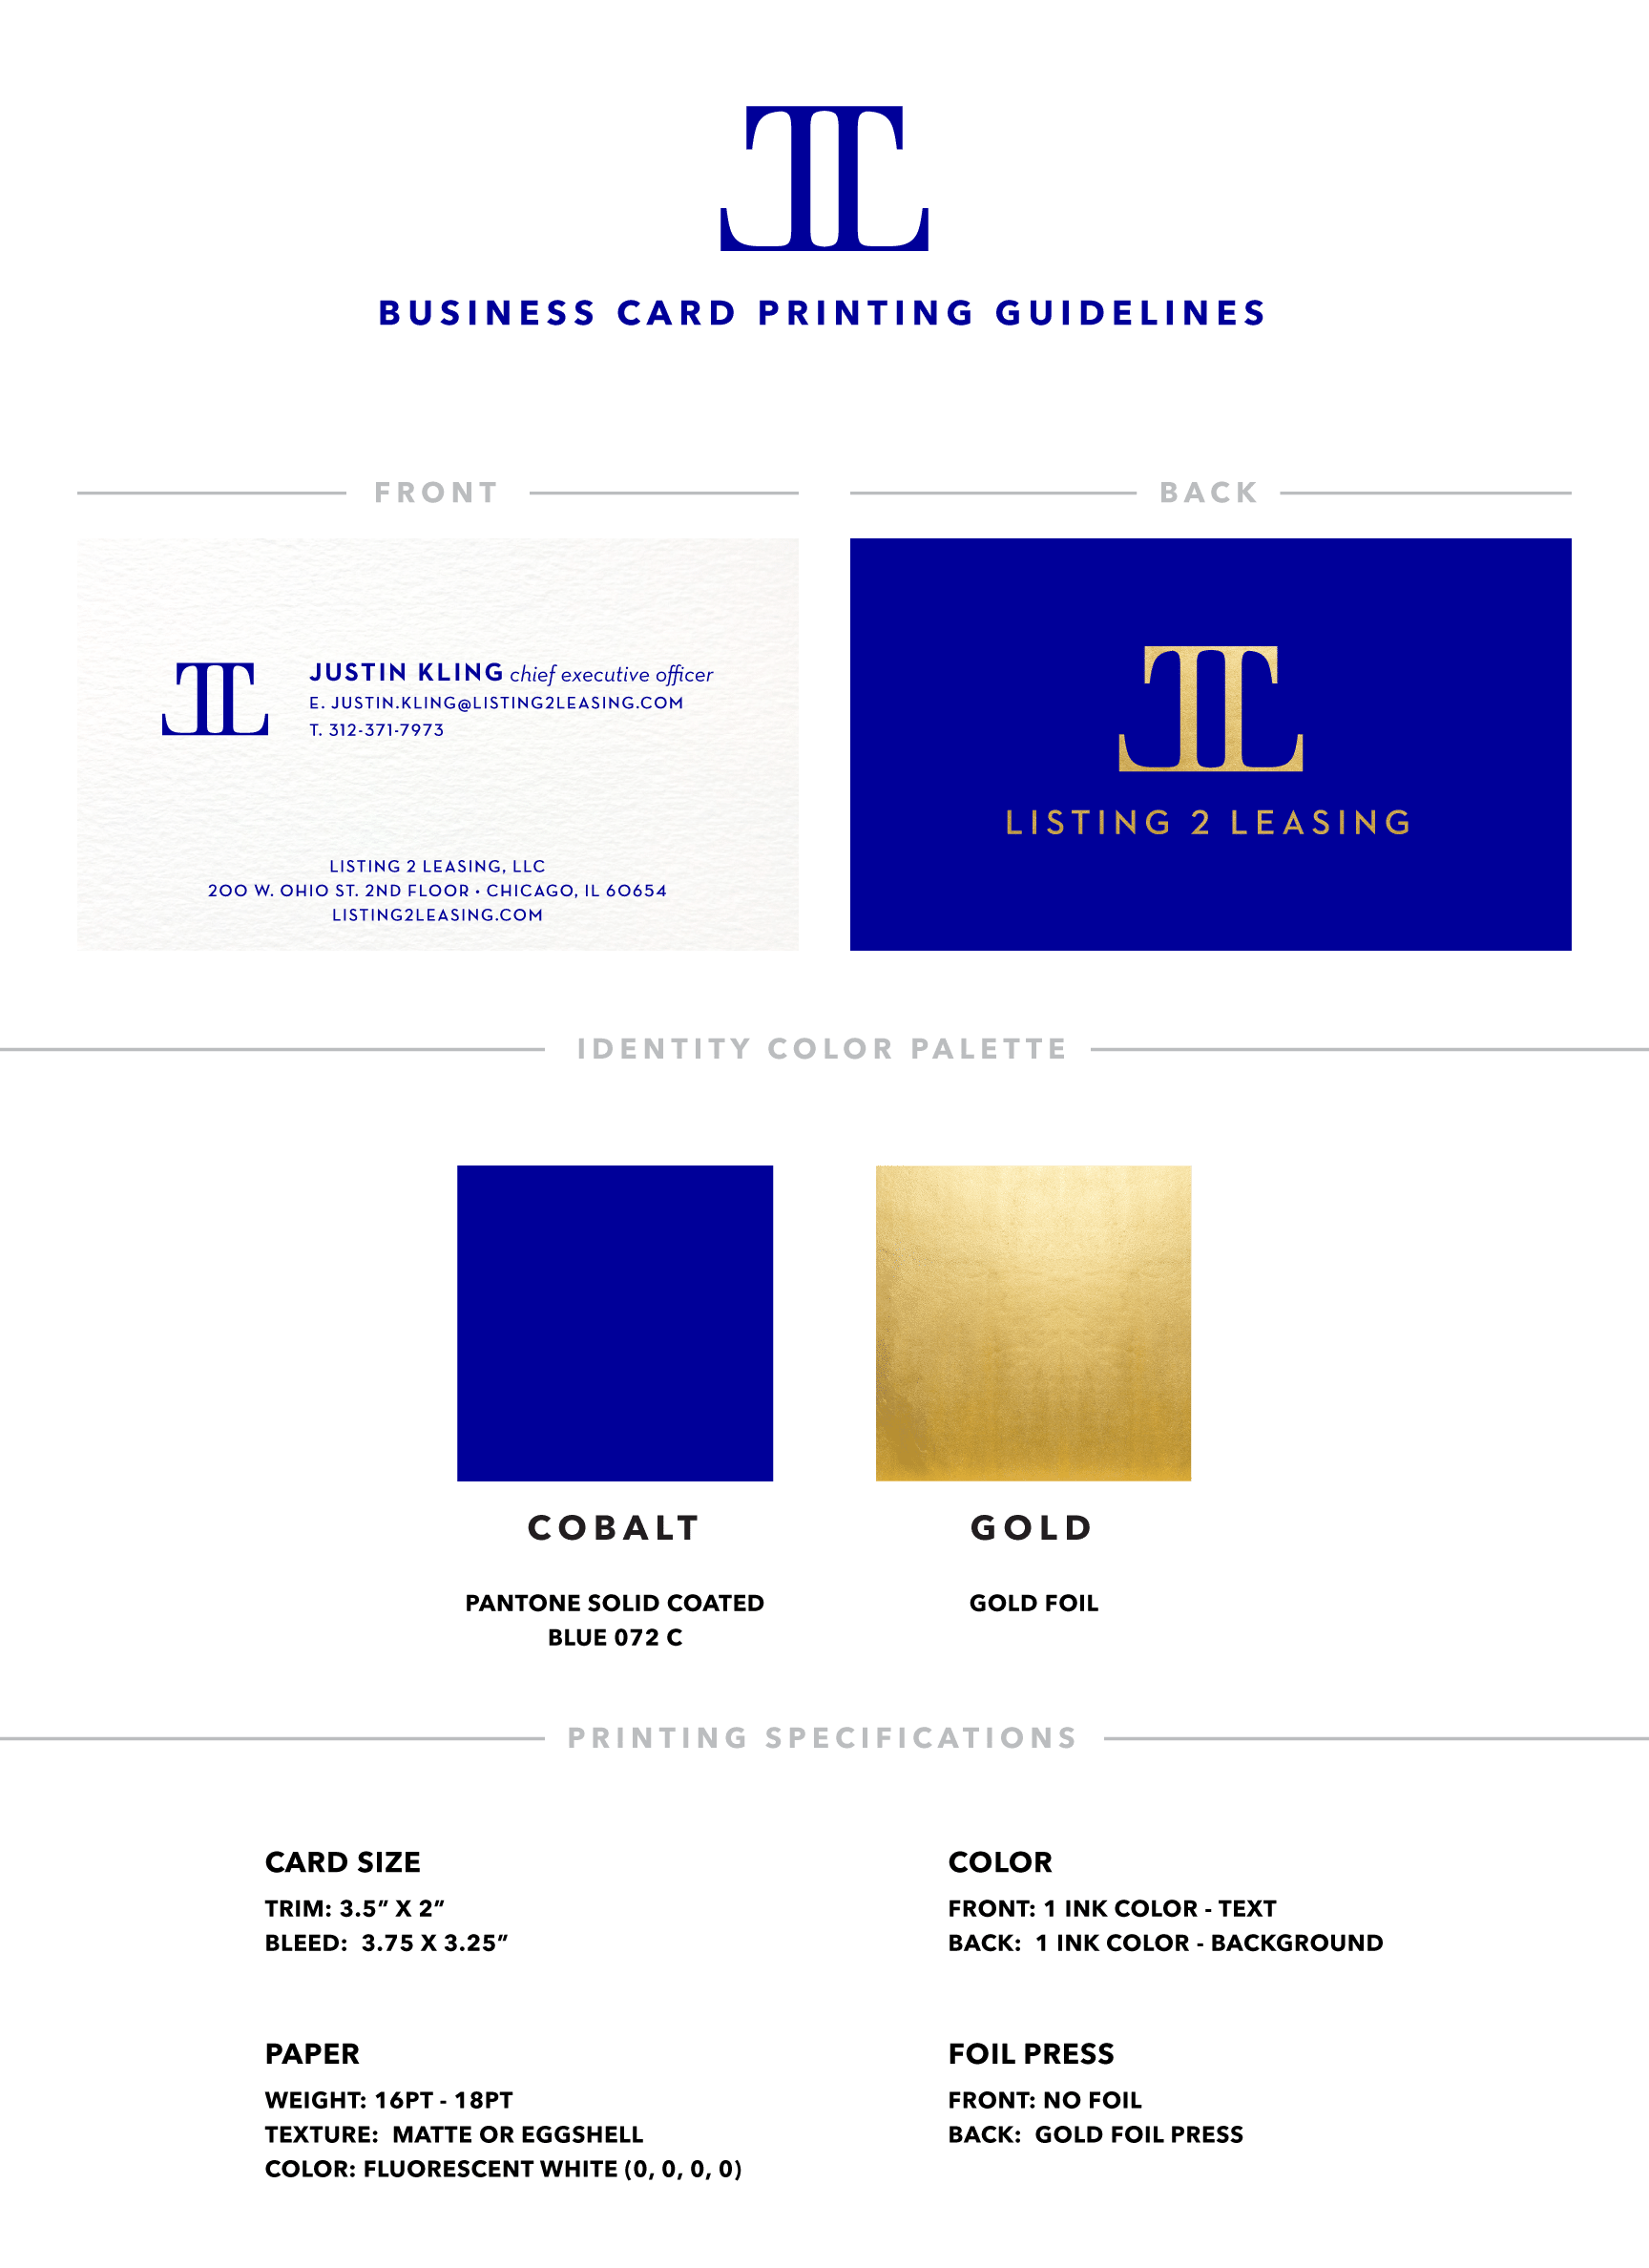 Listing 2 Leasing Brand Guidelines